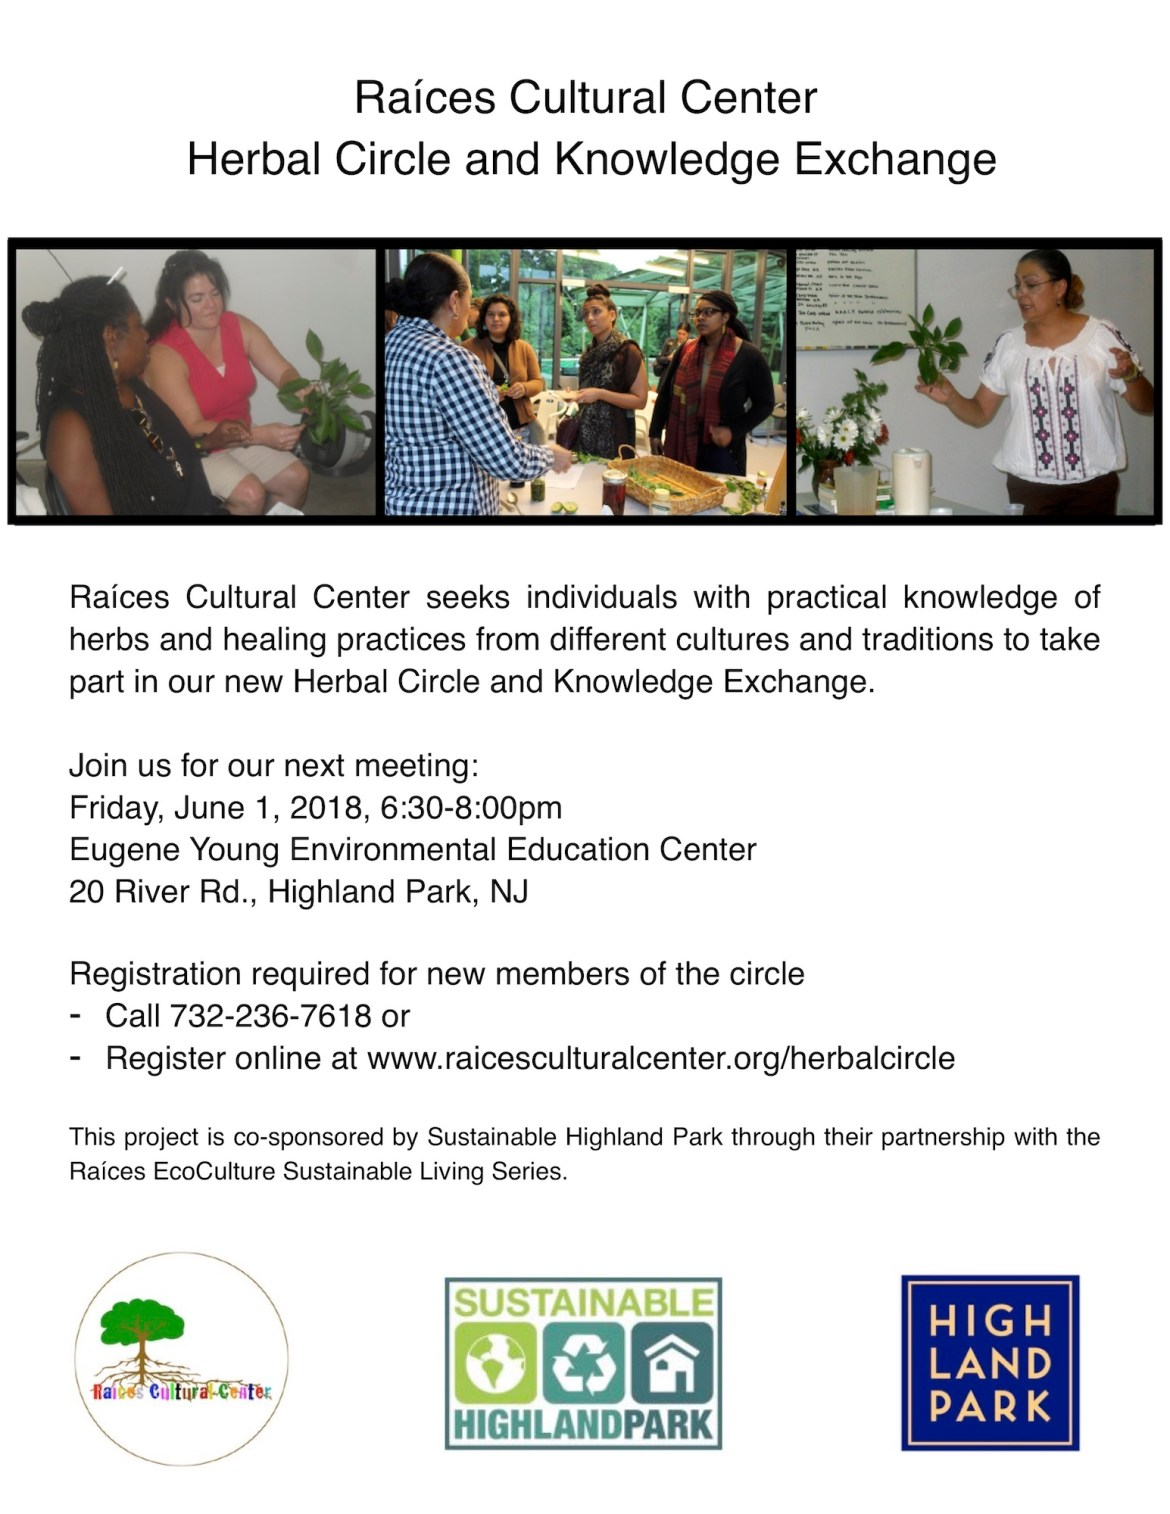 Flyer for Herbal Circle and Knowledge Exchange meeting, Friday, June 1 at 6:30pm at 20 River Road in Highland Park, New Jersey